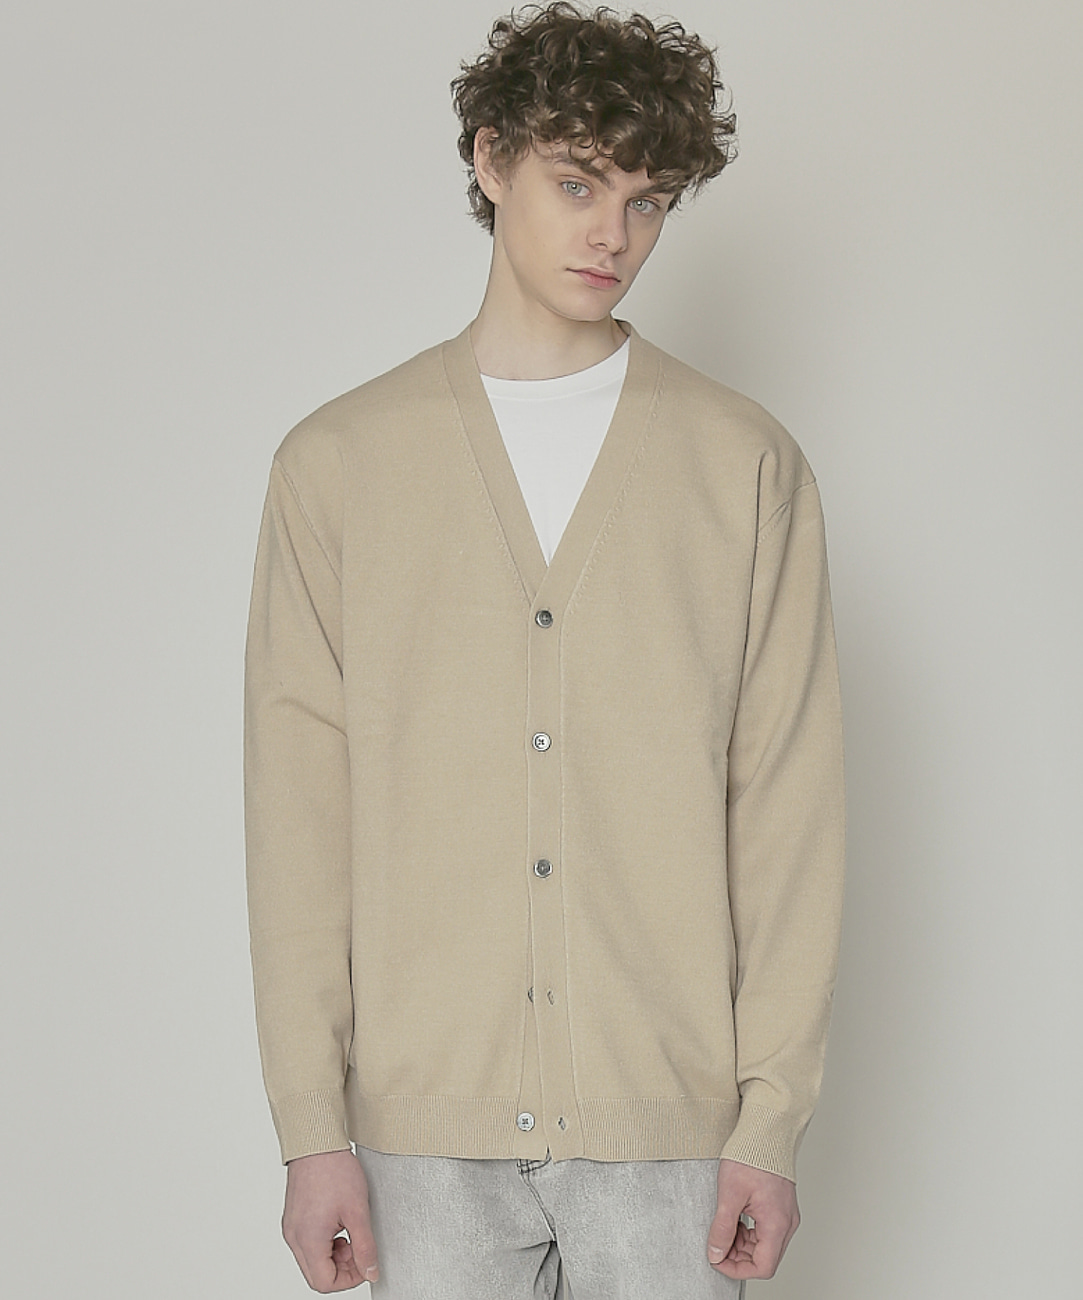 DWS SOFT BASIC CARDIGAN(SAND)